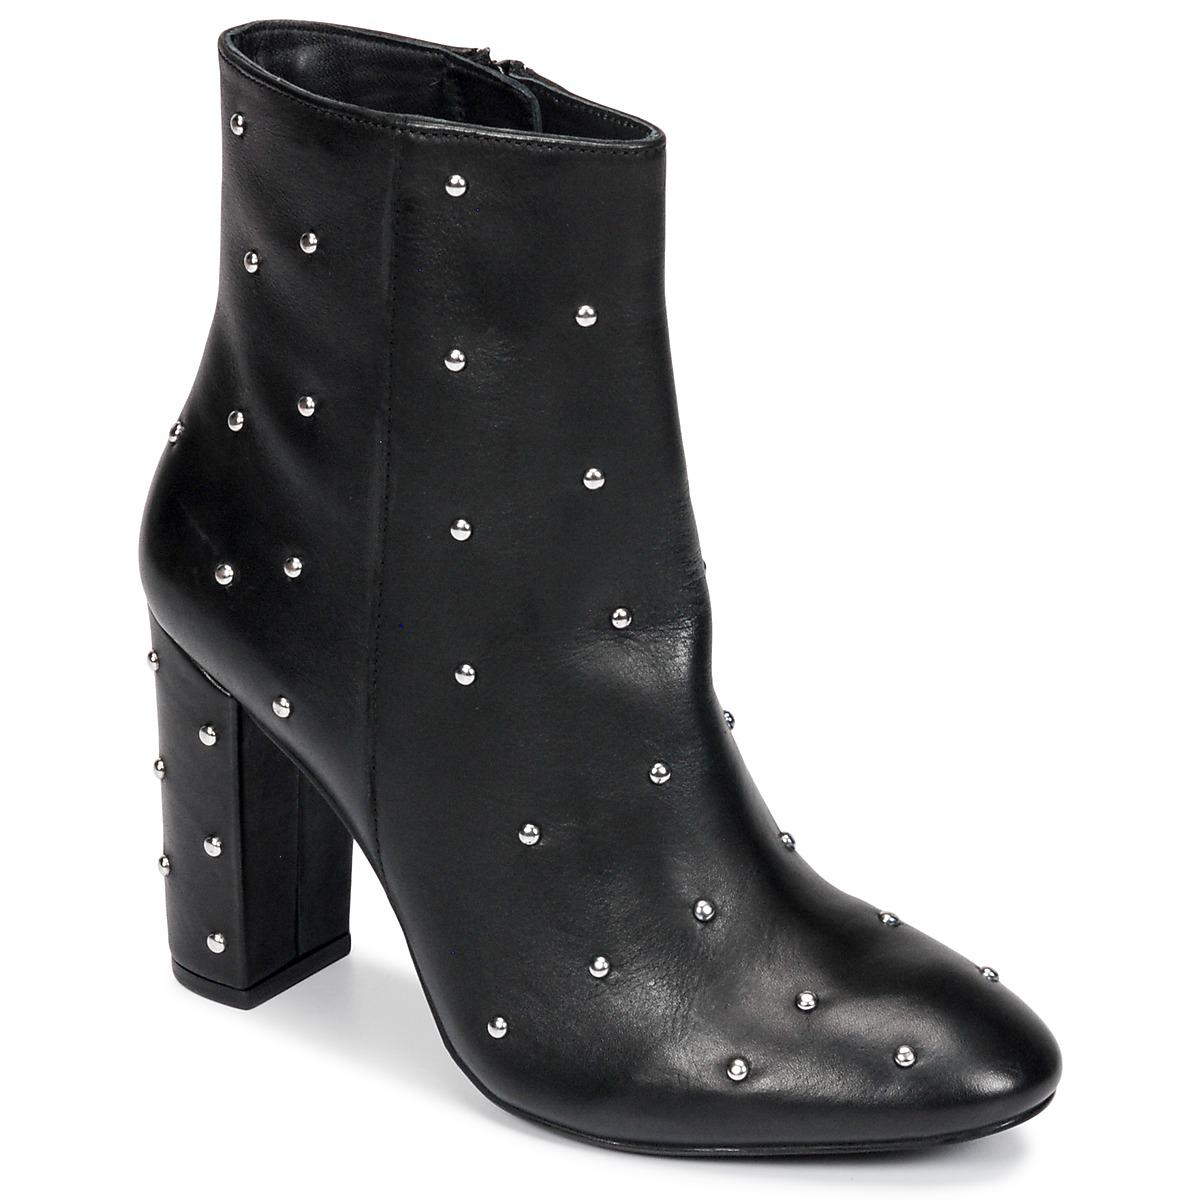 27a1f7a9ba6 KG by Kurt Geiger Swiss Women's Low Ankle Boots In Black - Save 15 ...